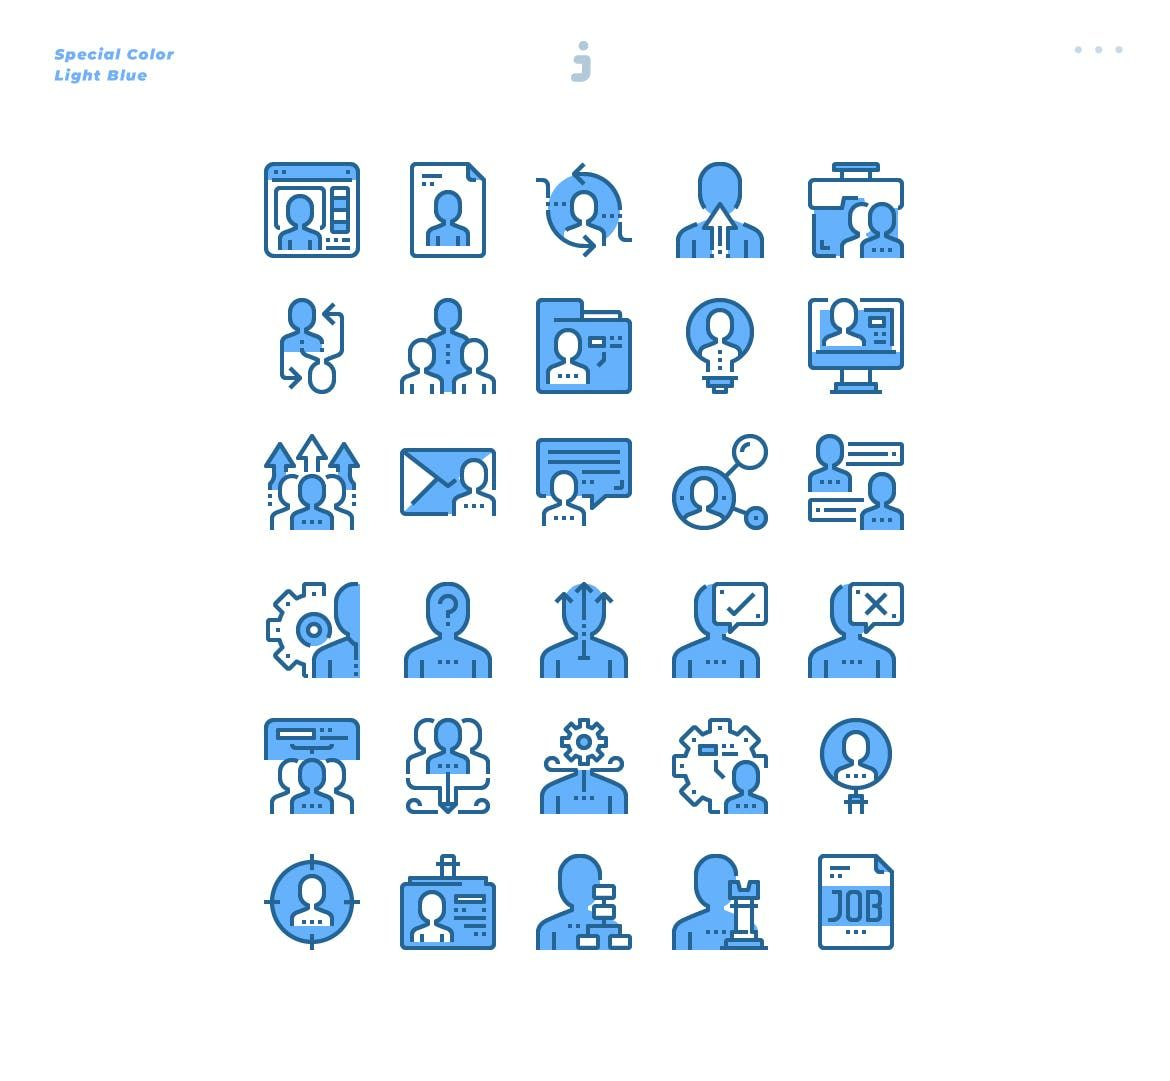 30 Human Resource Icons Light Blue By Justicon On Envato Elements Resources Icon Human Resources Icon Human resources blue icon set by phat plus. 30 human resource icons light blue by